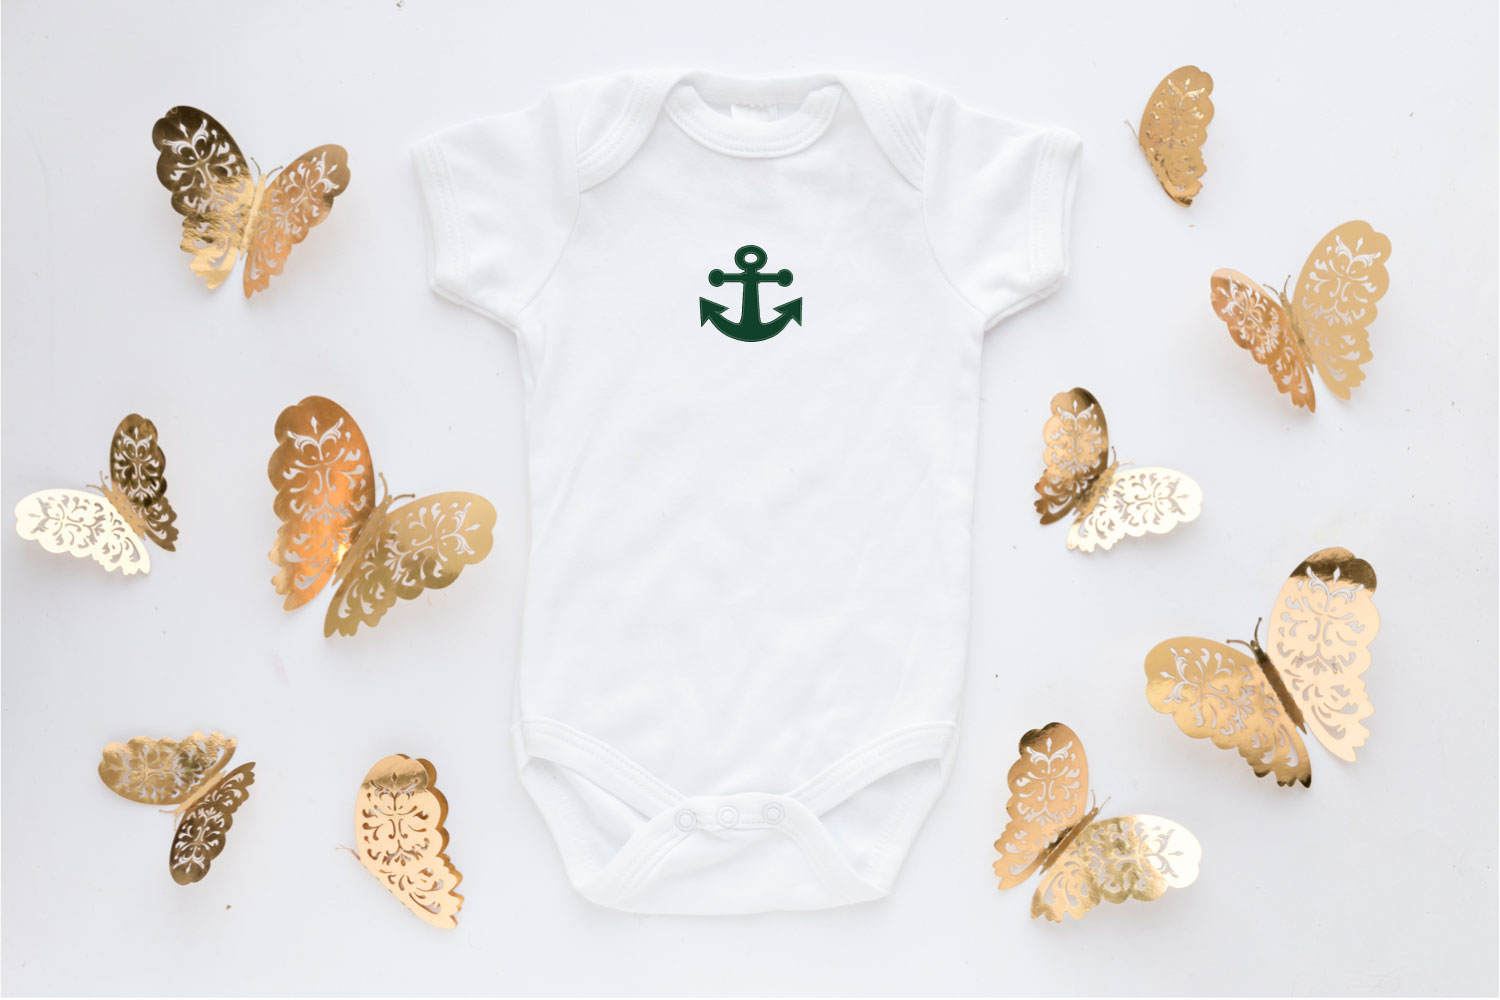 Anchor Applique Embroidery Design, Sea Embroidery Pattern example image 2